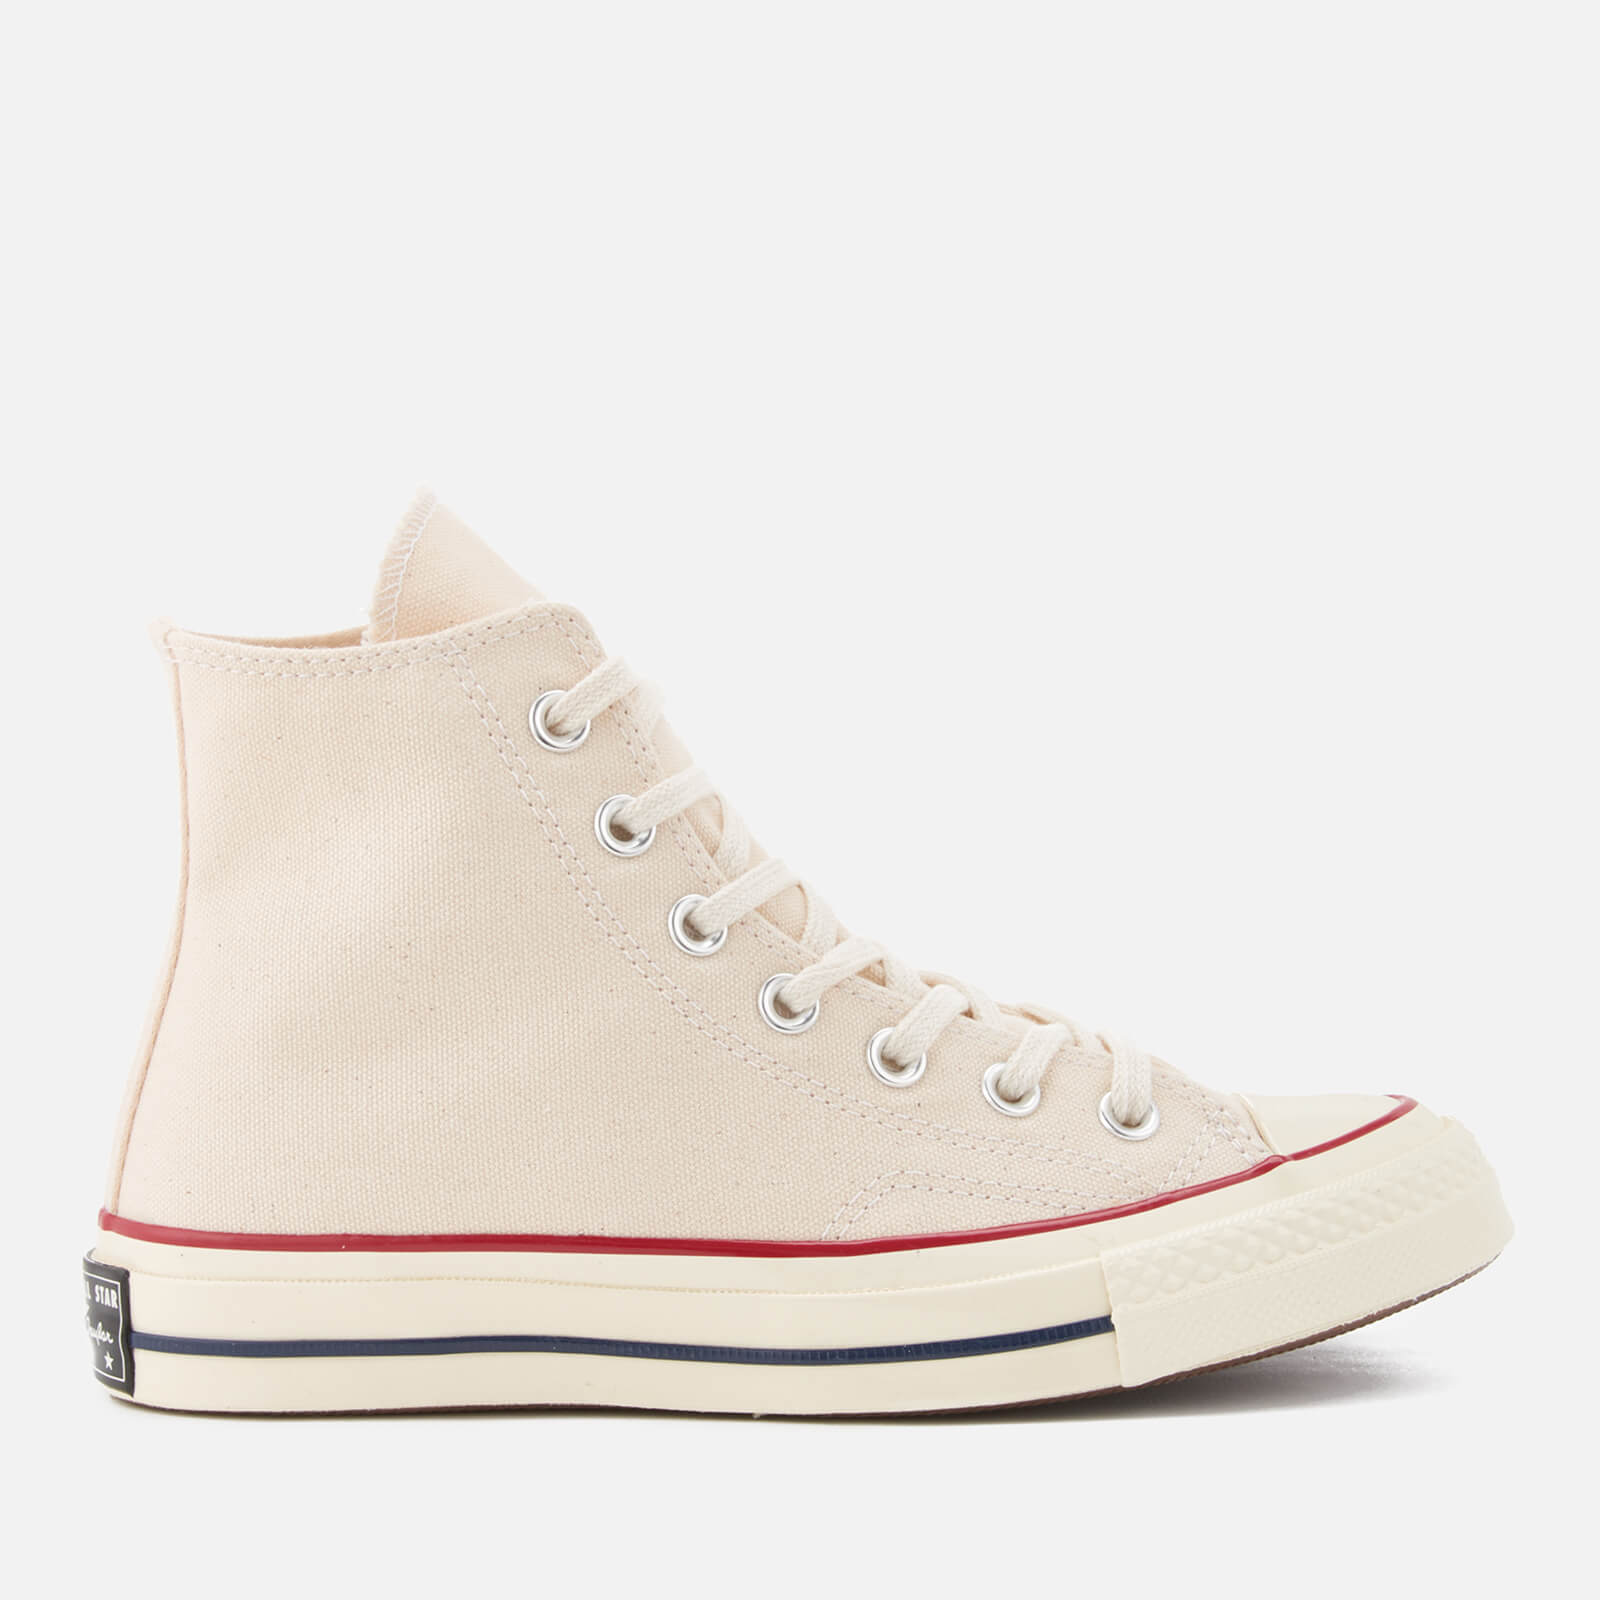 01384af84c2f Converse Chuck Taylor All Star  70 Hi-Top Trainers - Parchment - Free UK  Delivery over £50